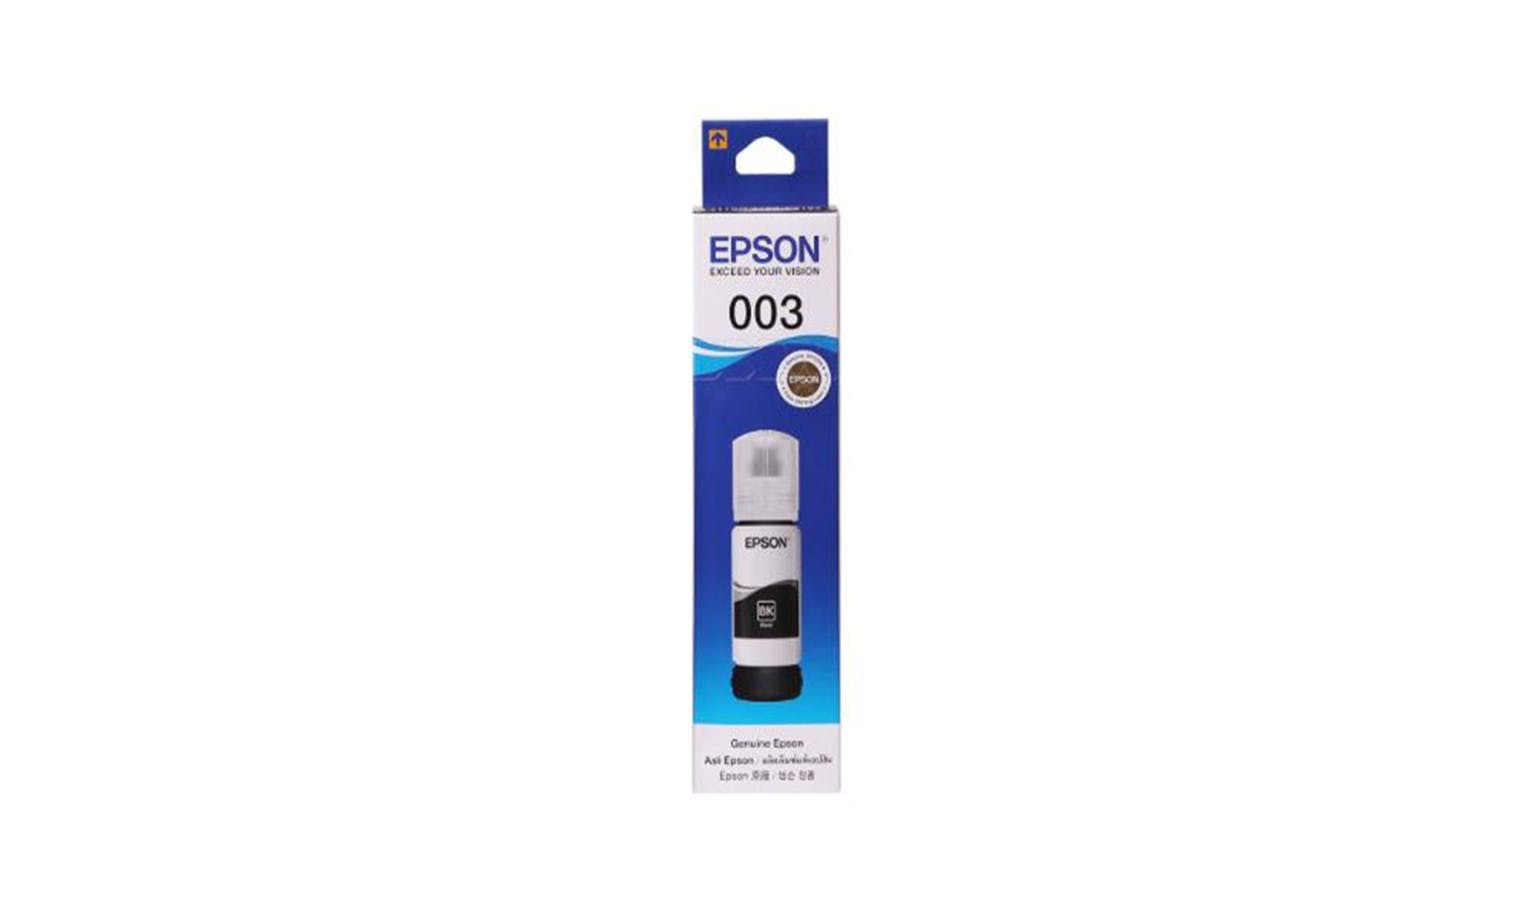 Epson C13T00V100 Ink Bottle - Black